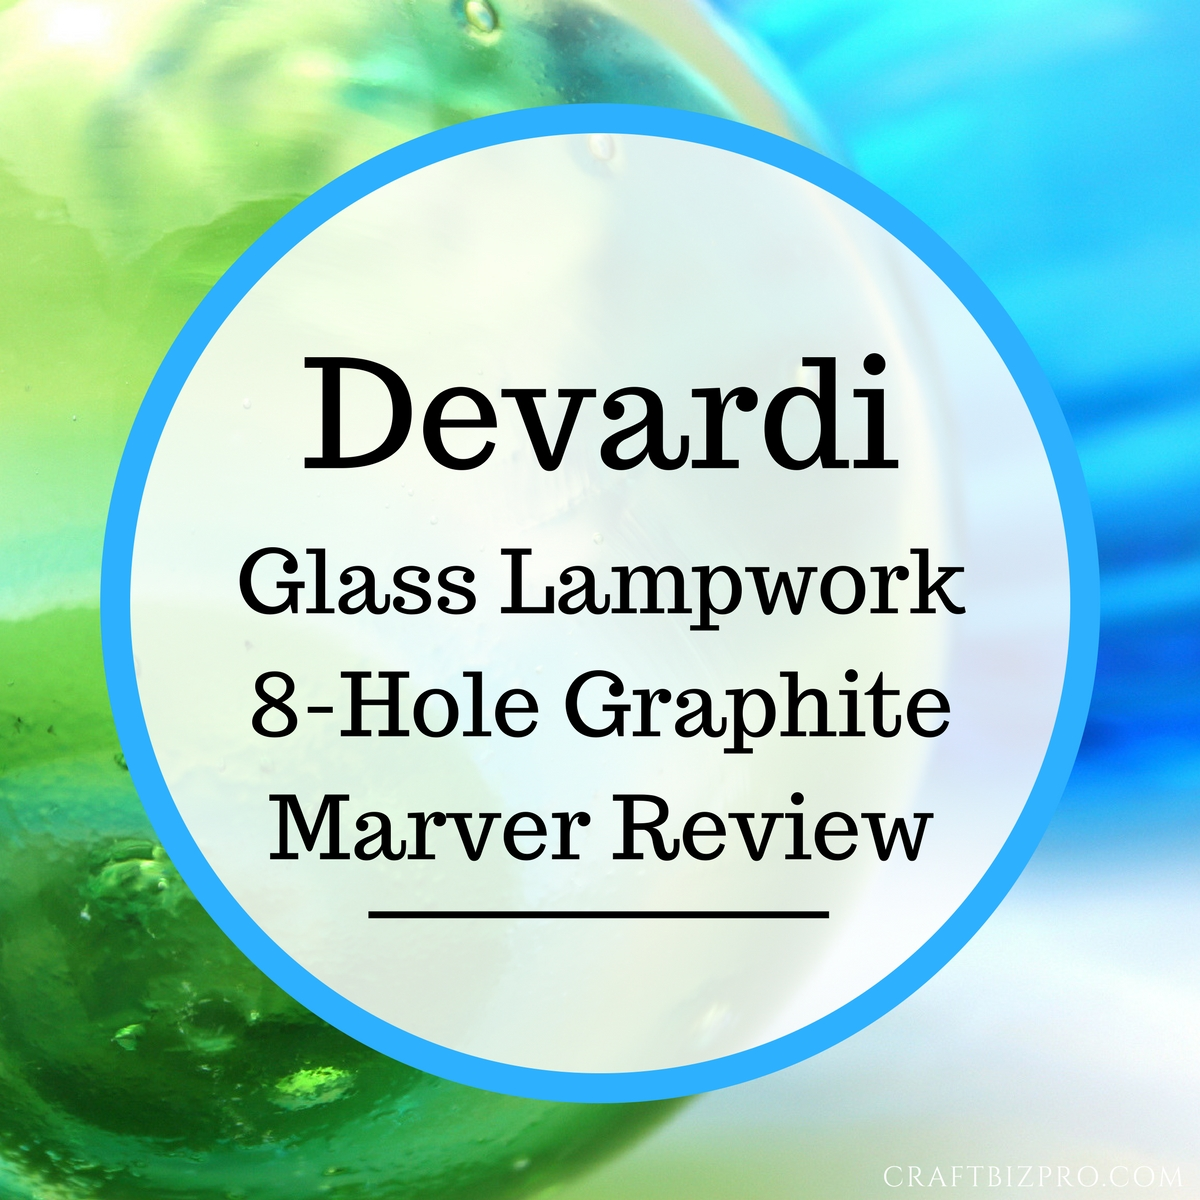 Devardi Glass Lampwork 8-Hole Graphite Marver Review